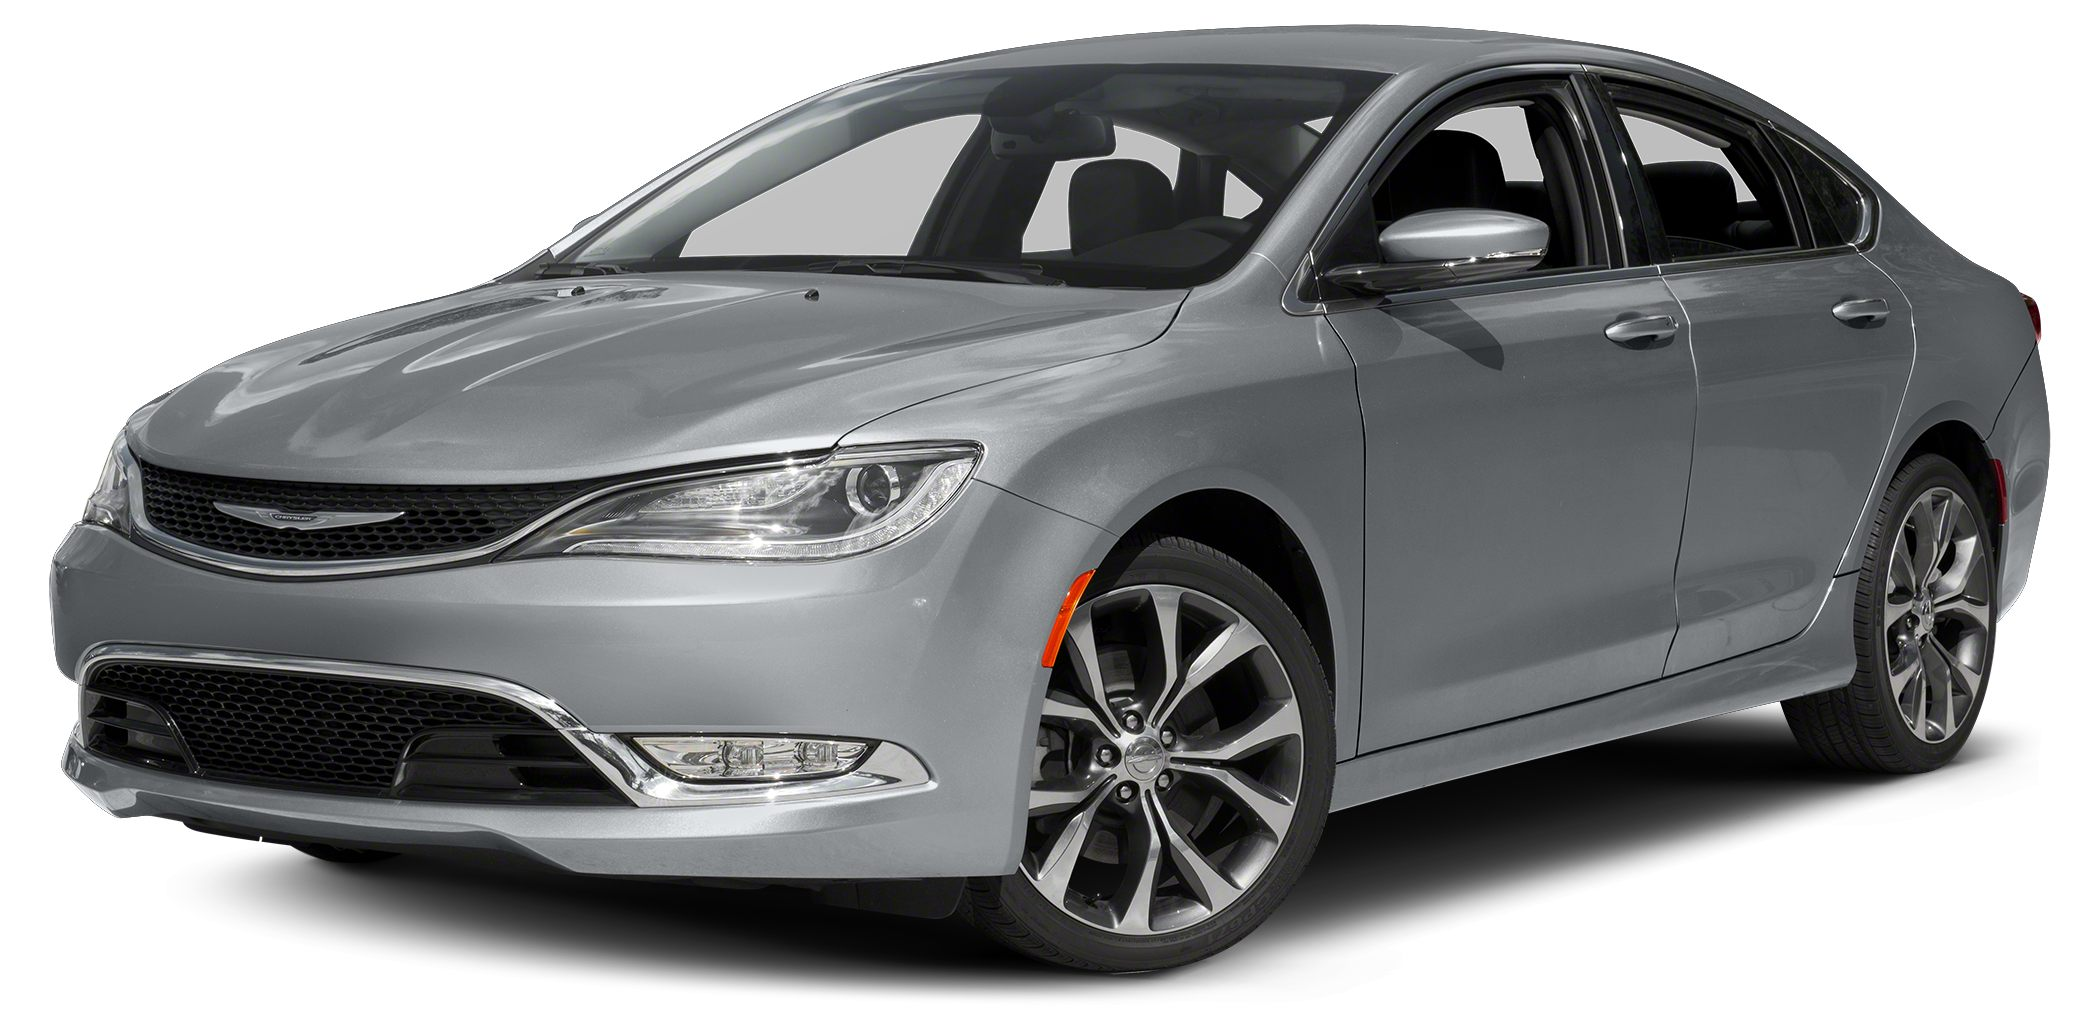 2015 Chrysler 200 C Miles 18001Color Billet Silver Clearcoat Metallic Stock FH0773A VIN 1C3C